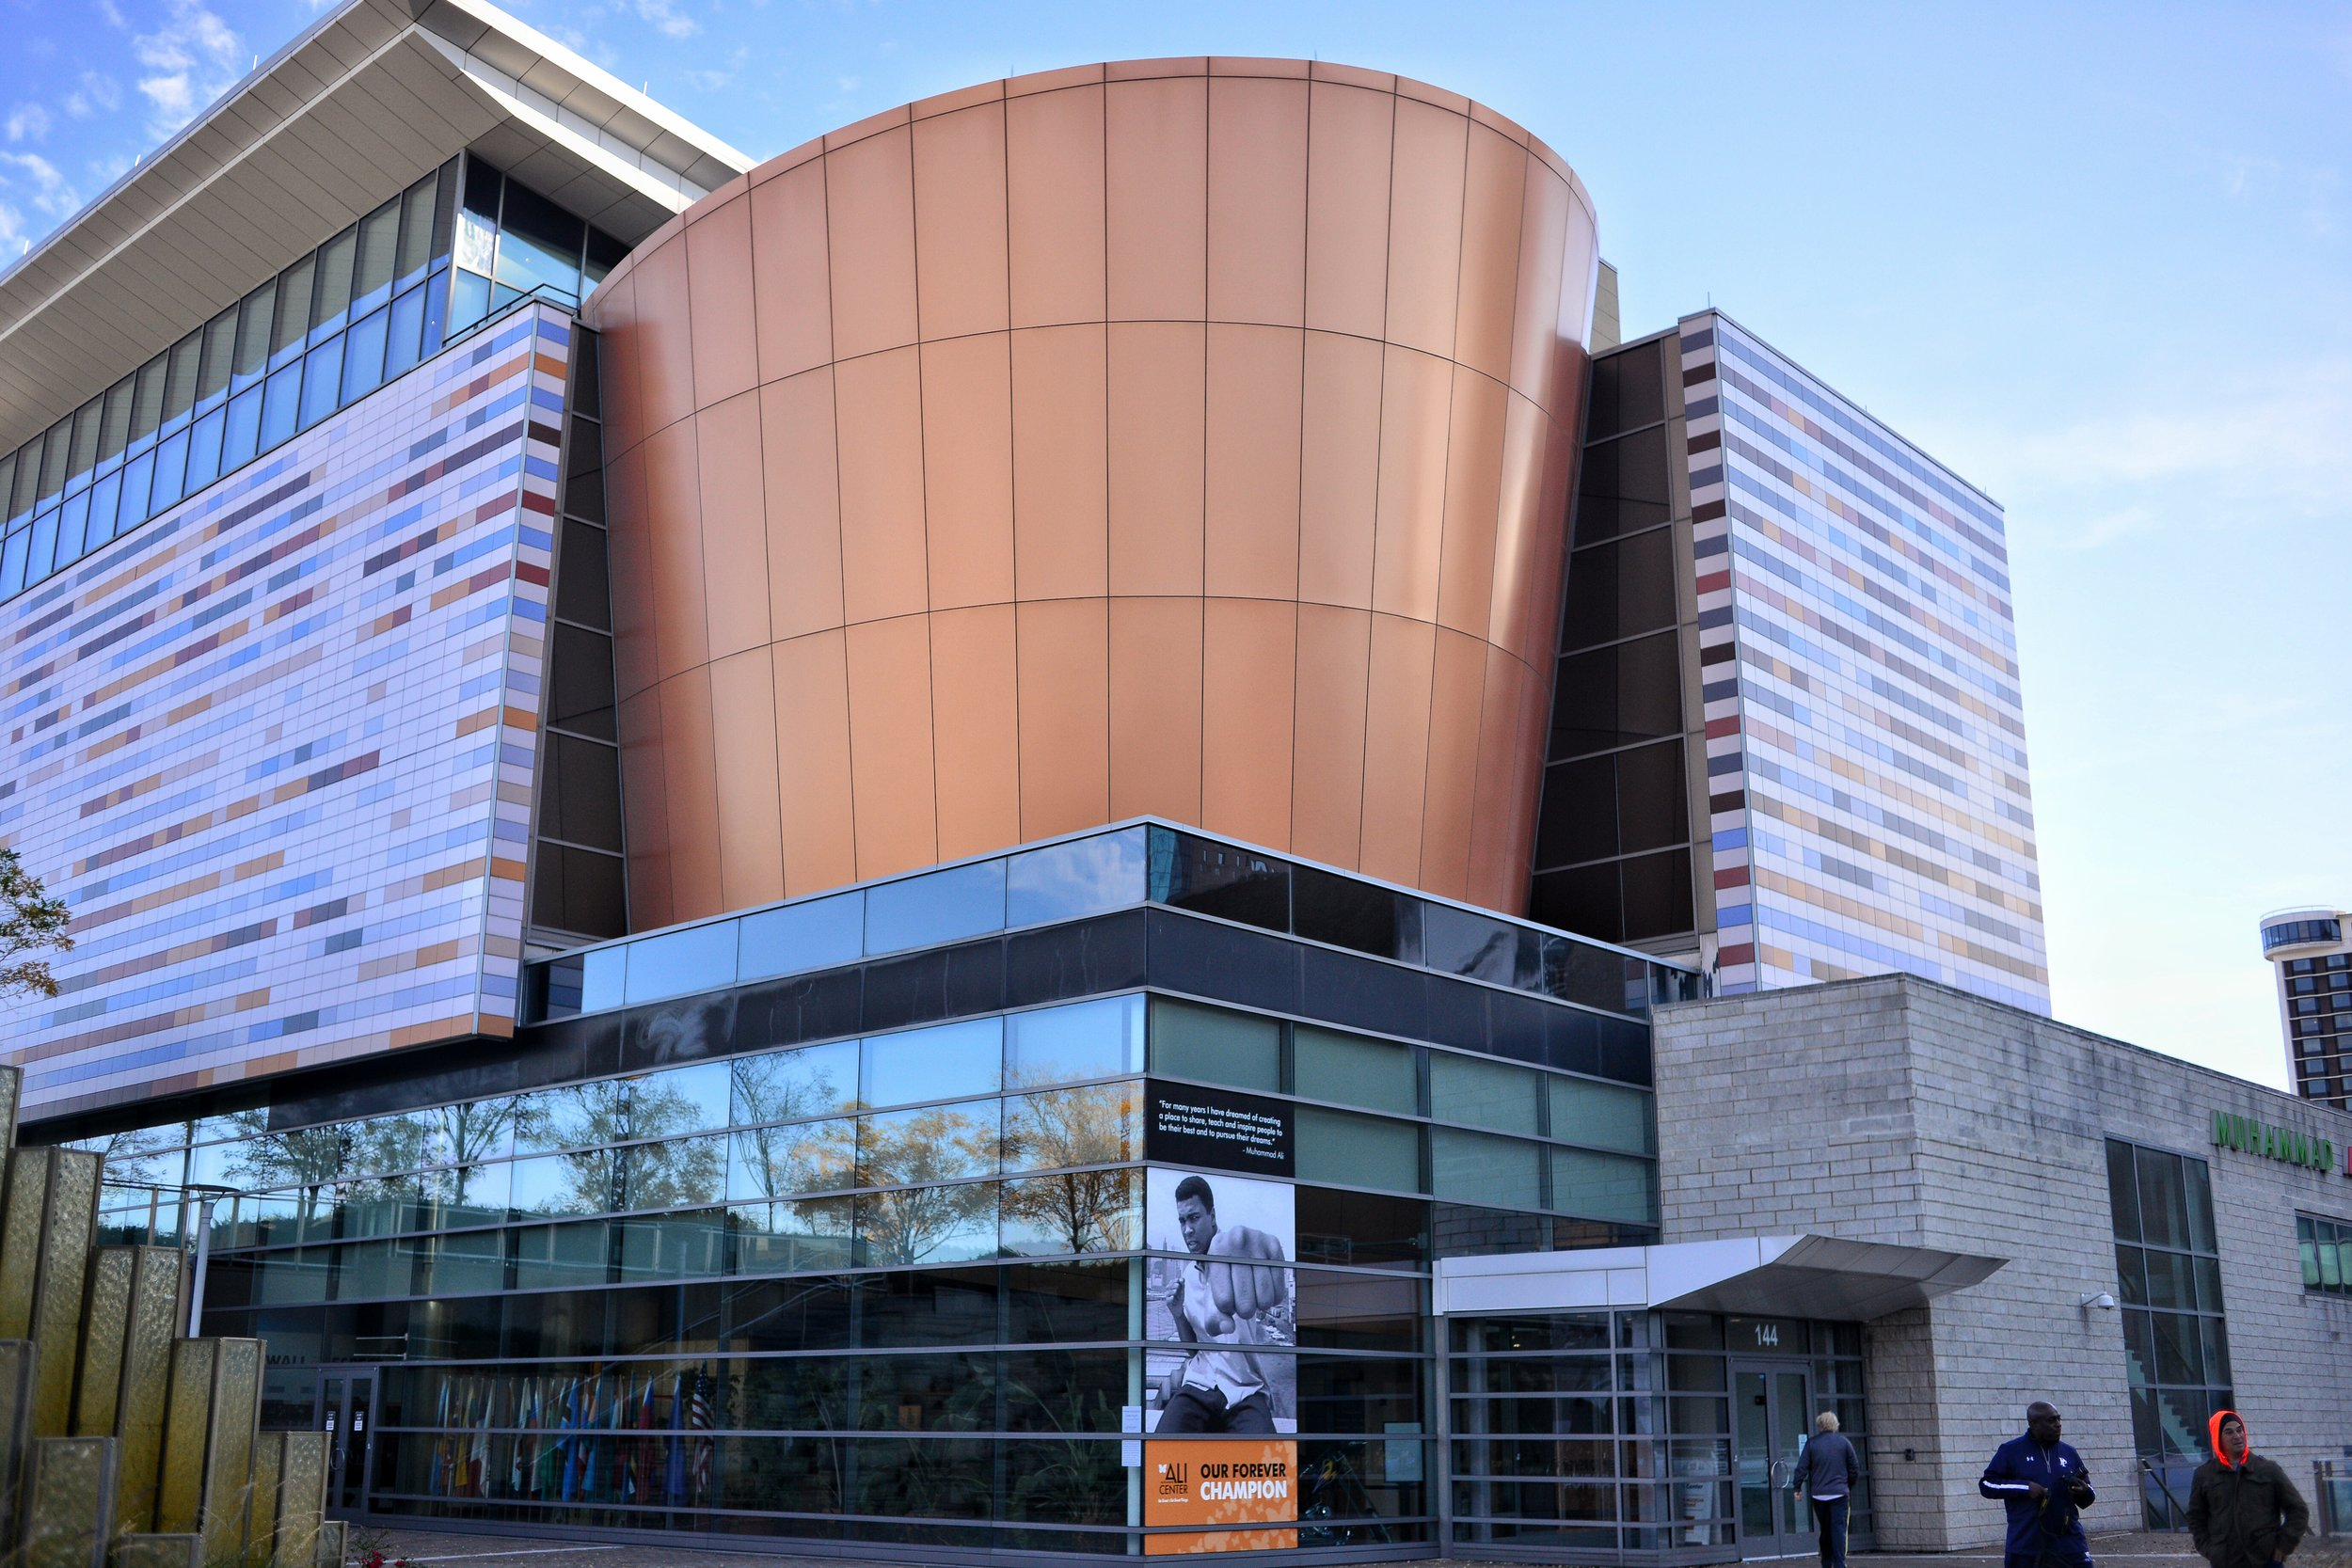 The Muhammad Ali Center In Louisville, Kentucky is a museum dedicated solely to the life and career of Muhammed Ali.